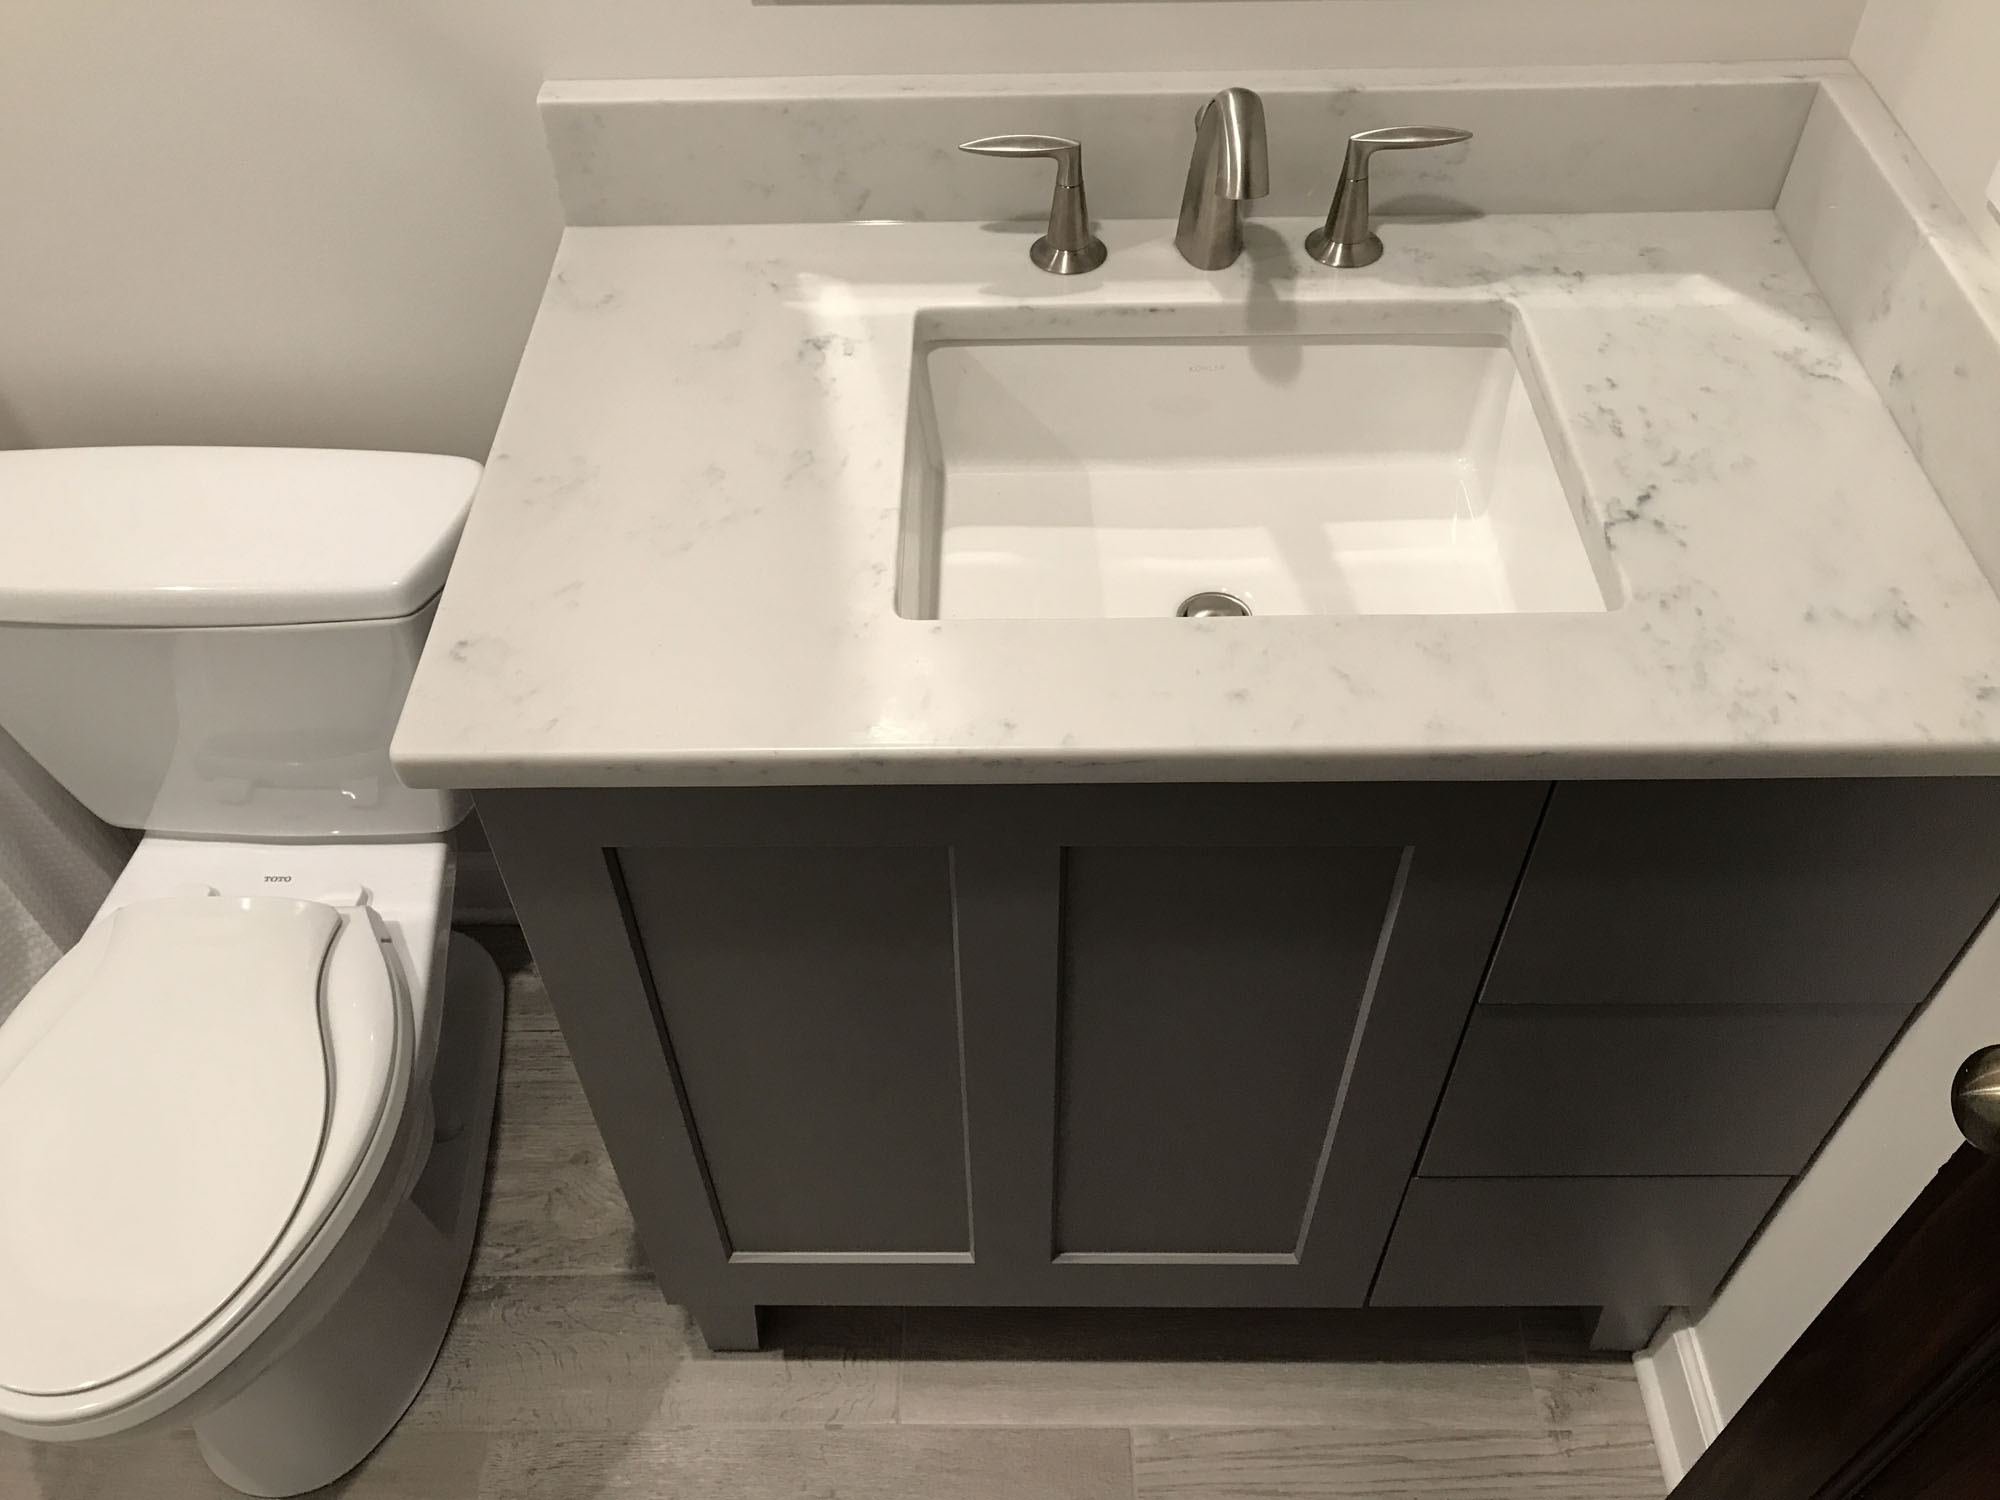 Bathroom Remodeling Quincy Il bathroom remodeling orland park il : brightpulse